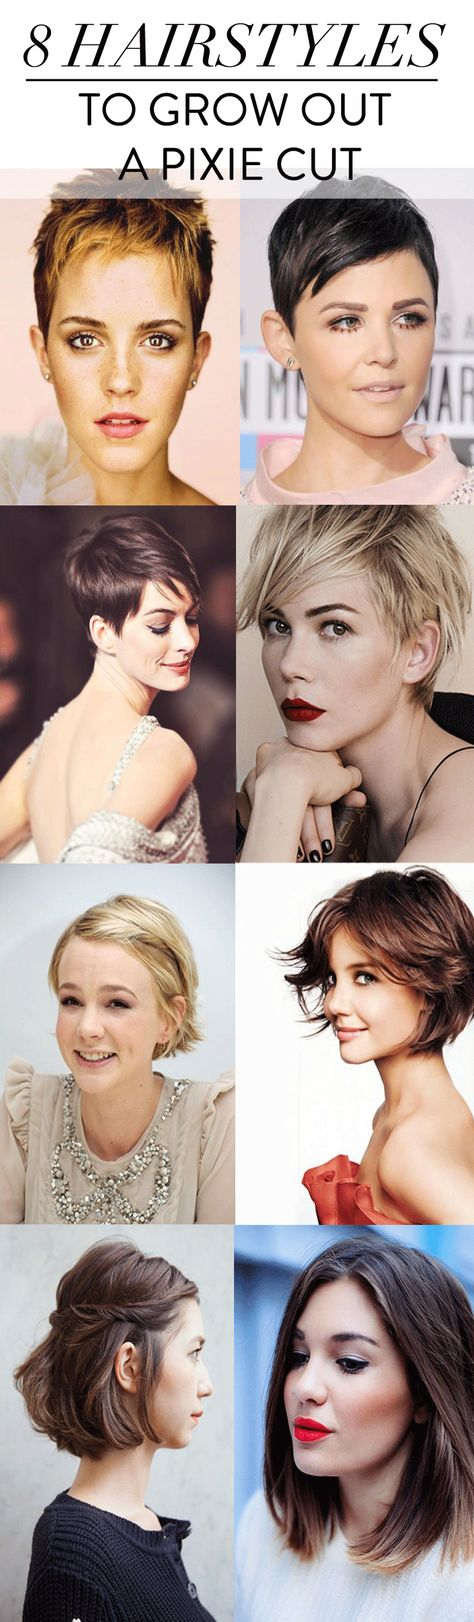 Pixie Cut Transition Hairstyles For Growing Out Short Hair